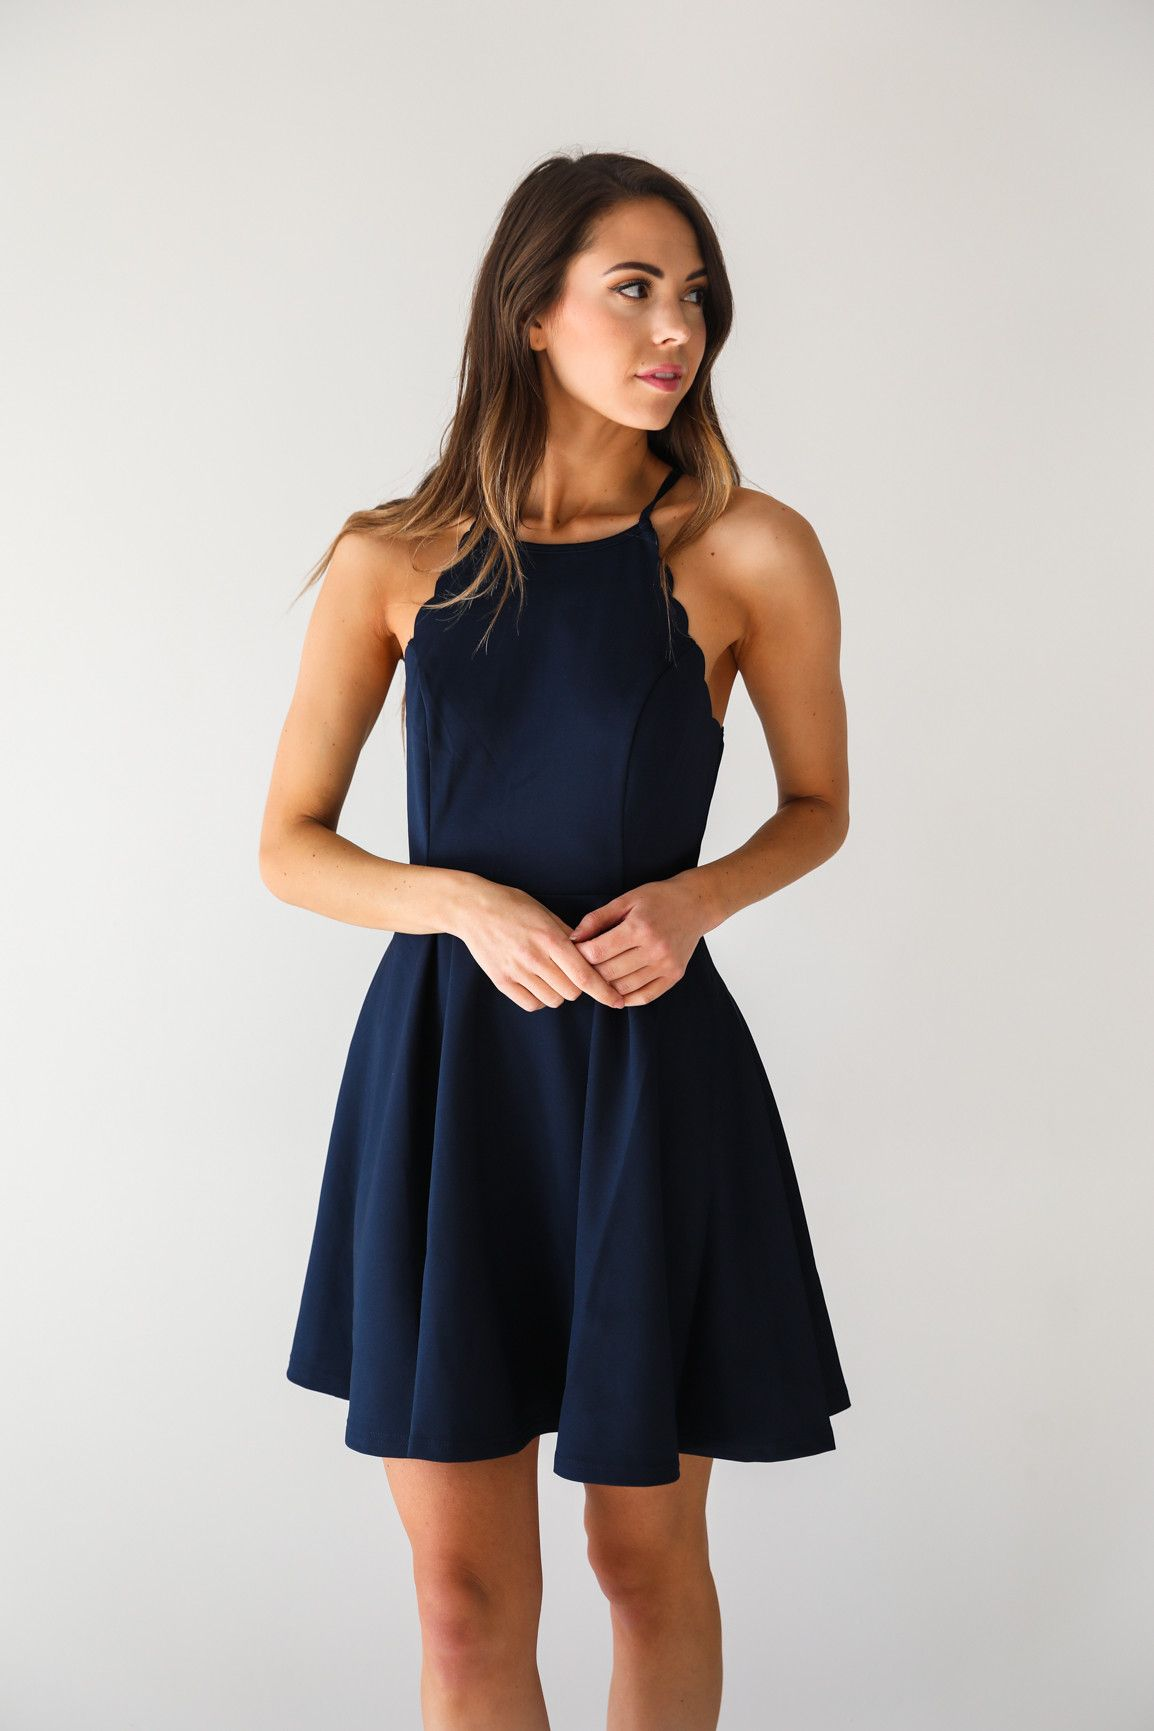 Dark navy sleeveless fit and flare dress with scalloped detail • Available  in S 4dca3c5a9007